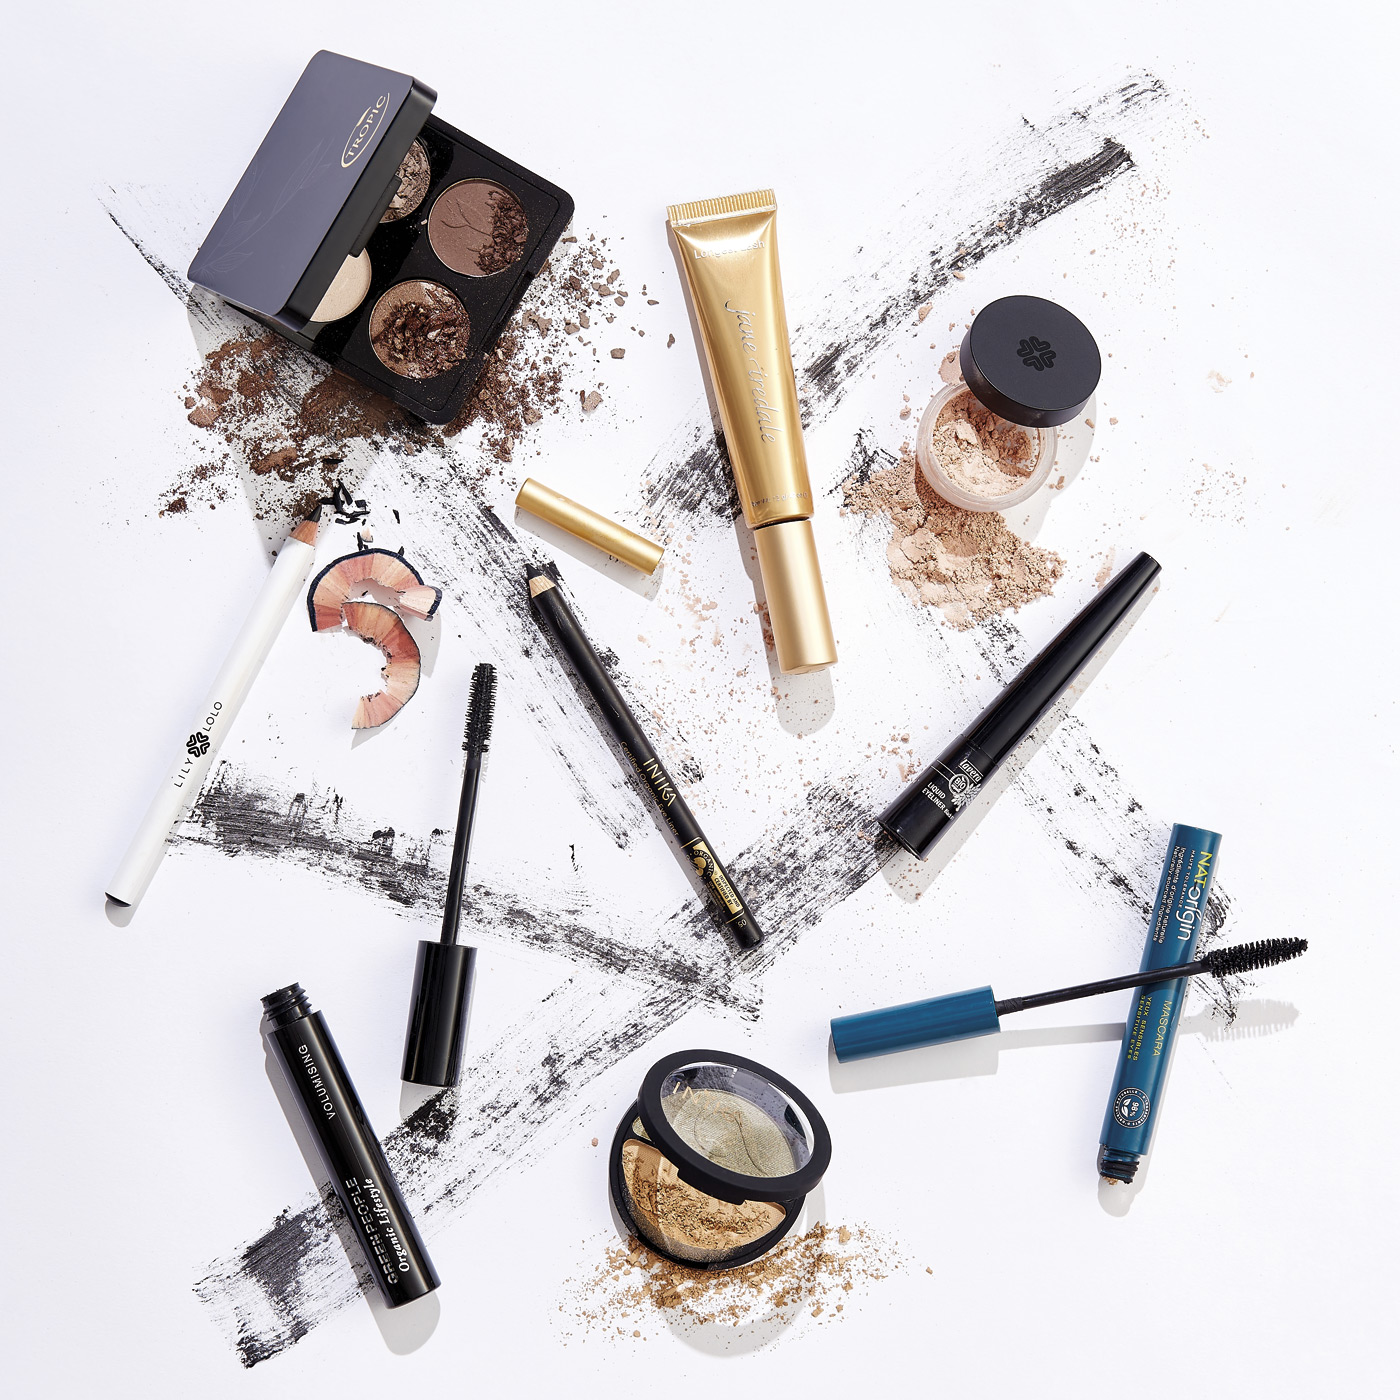 Makeup product photography